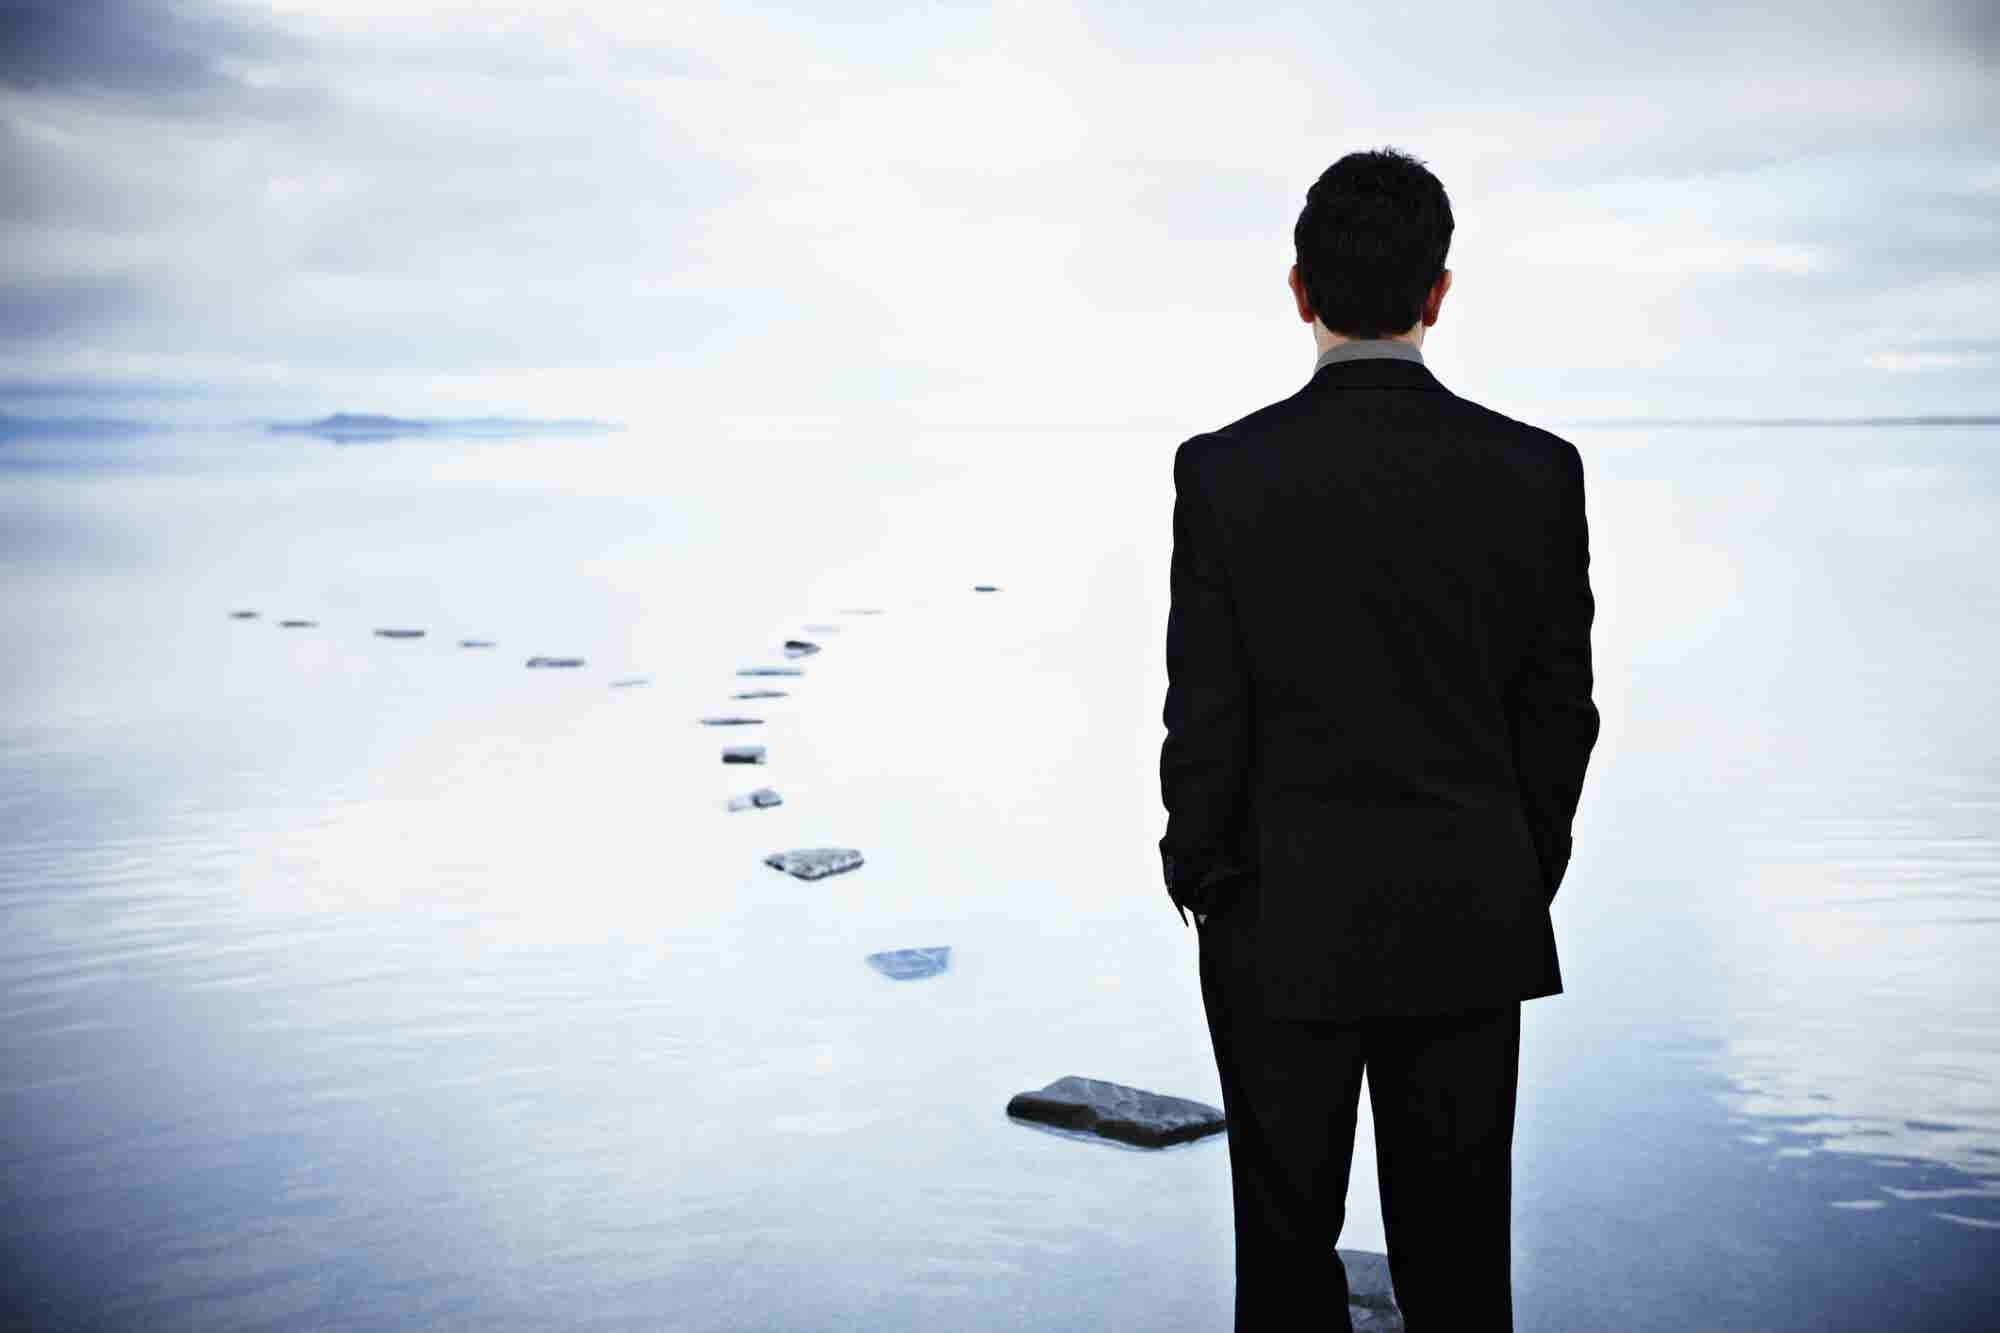 4 Difficult Steps on the Journey from 'Zero to One'